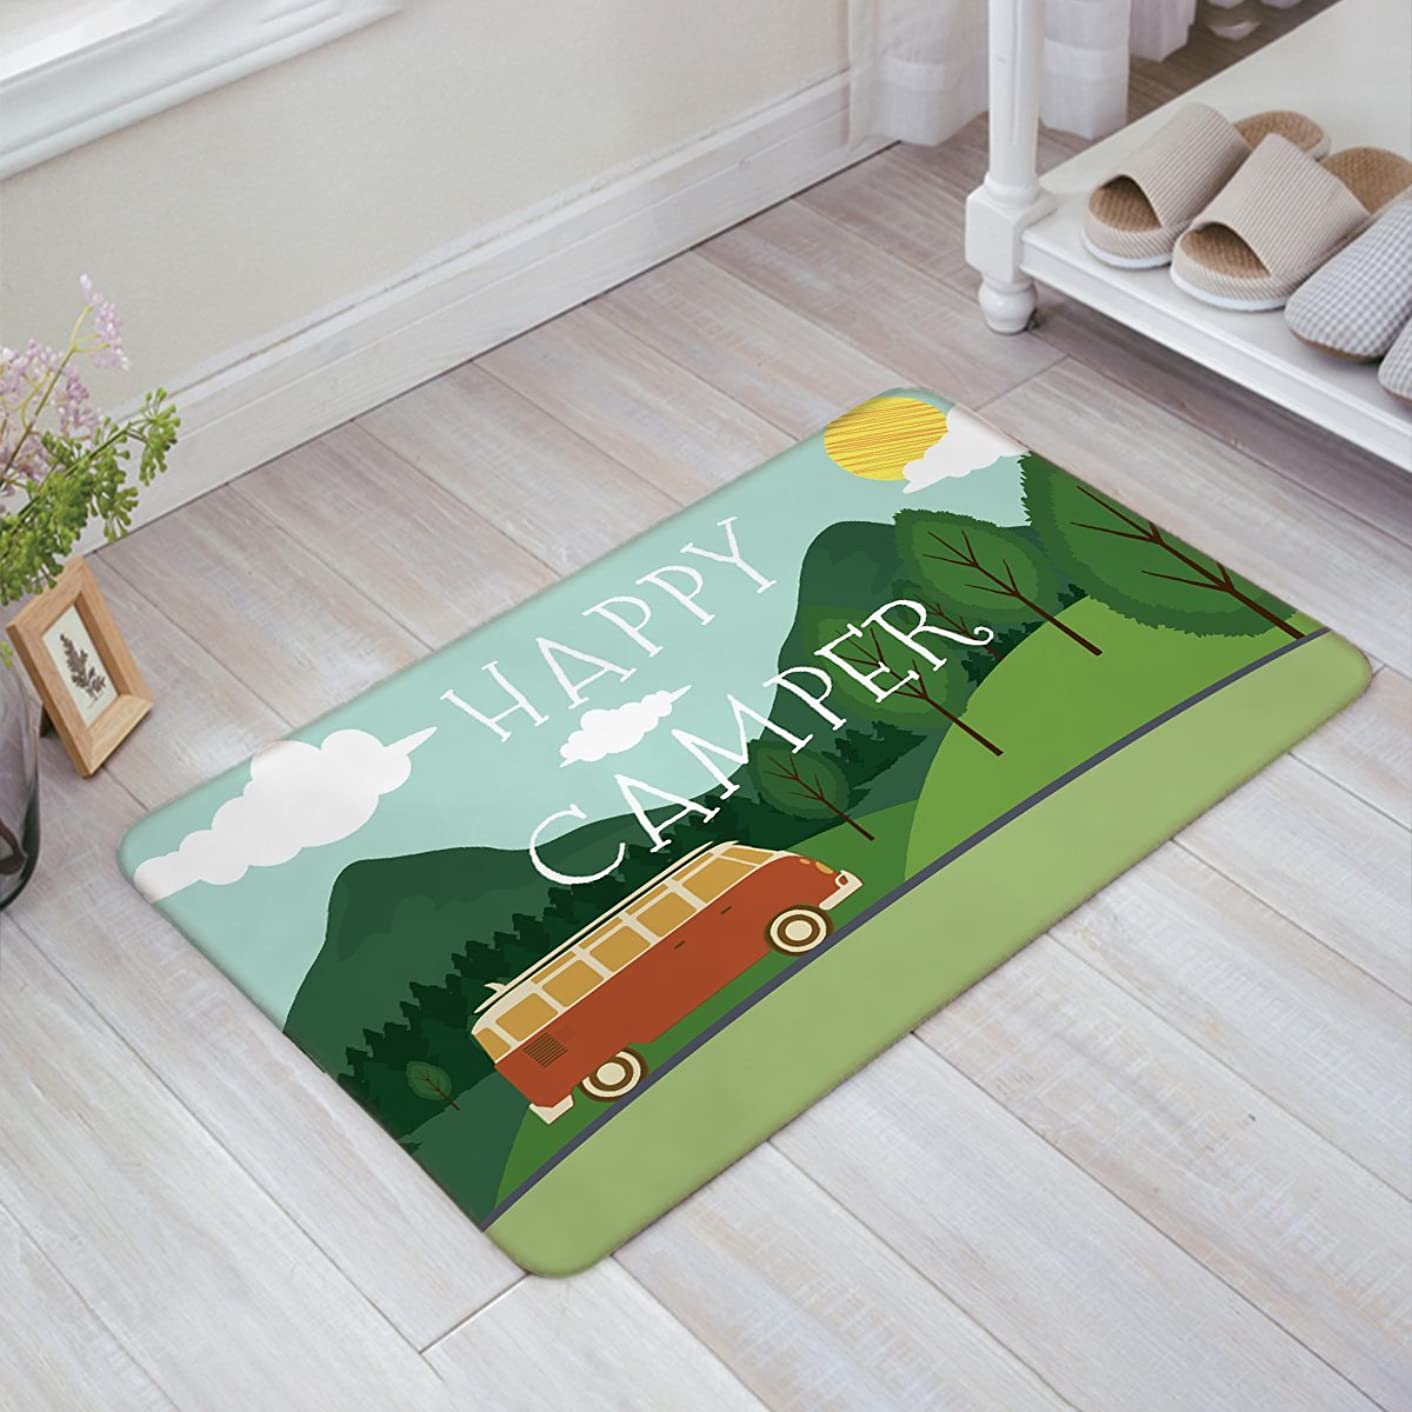 Family Decor Door Mat Indoor/Outdoor Non Slip Entrance Front Doormat Area Rugs, 23.6